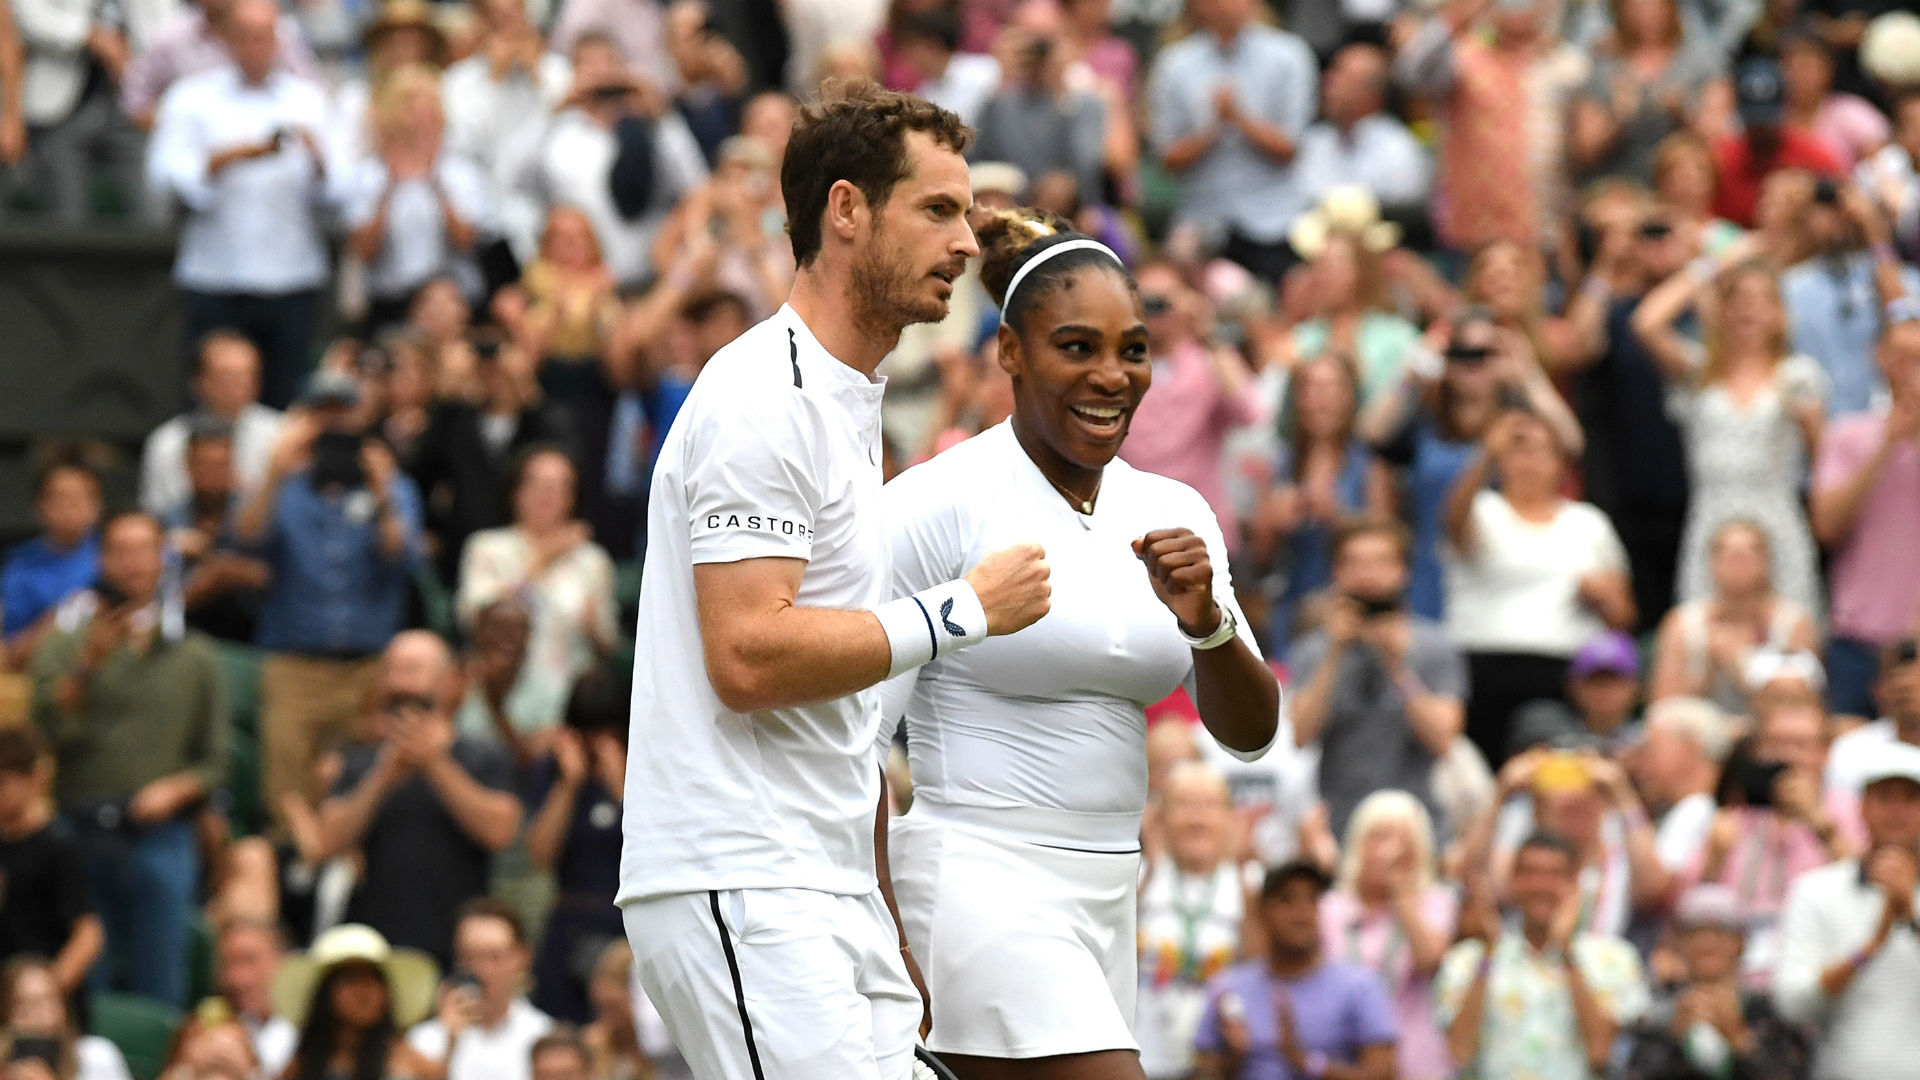 US Open set to come soon for Murray